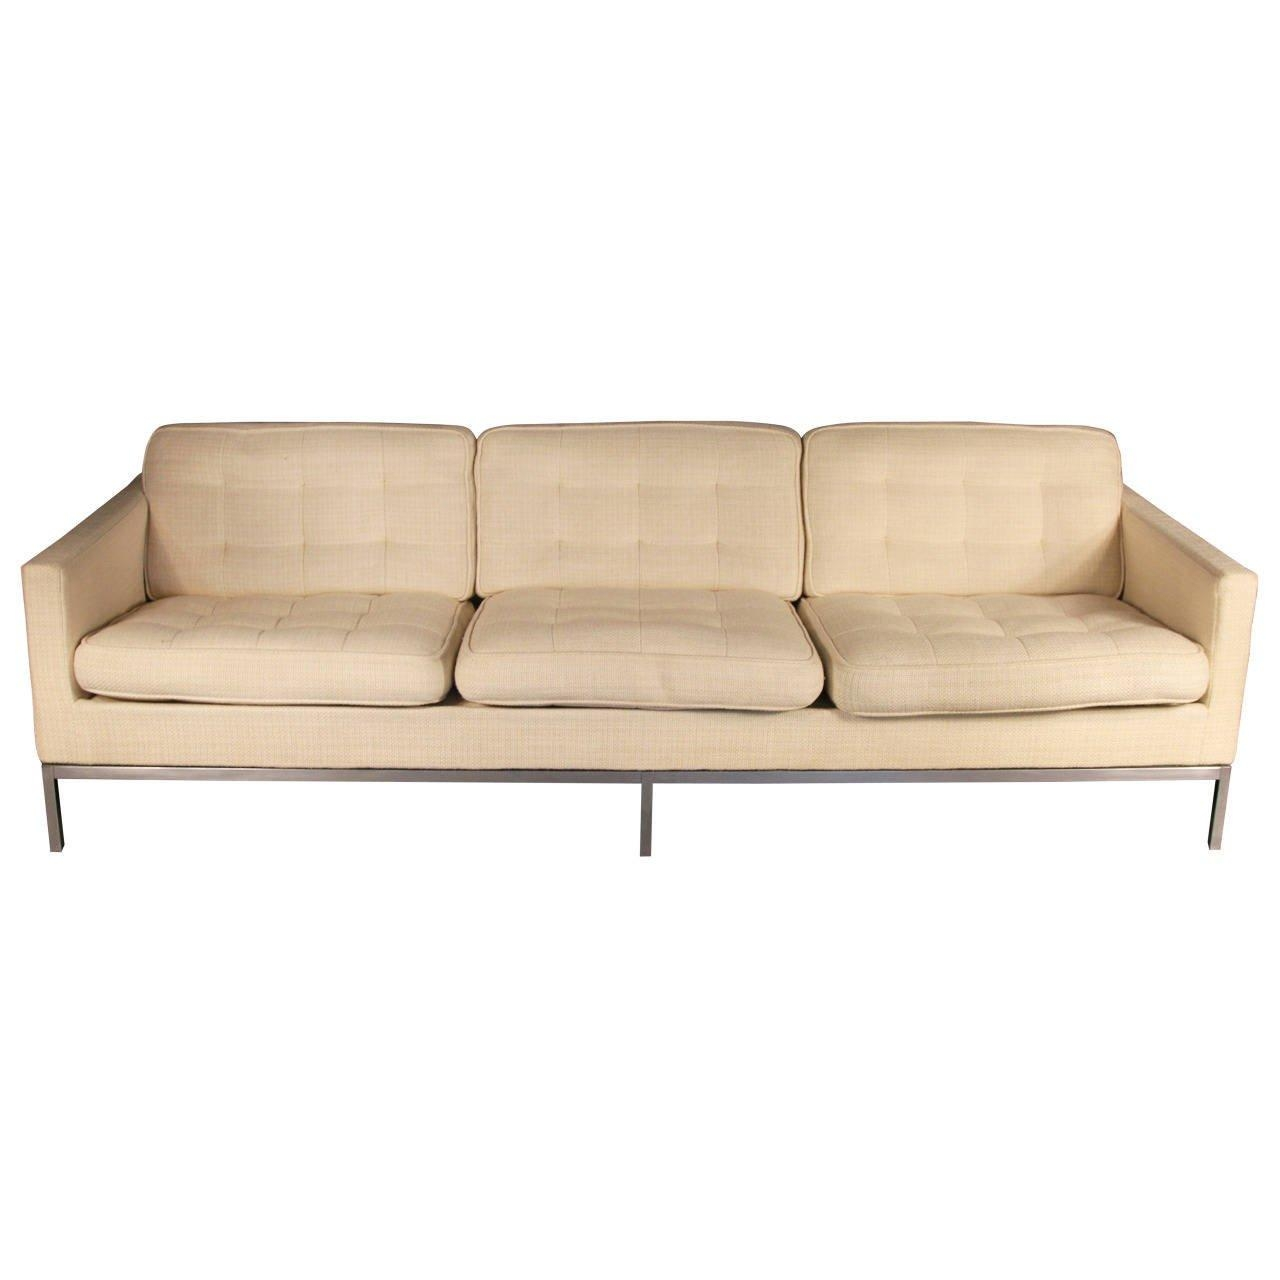 Florence Knoll Sofas – 54 For Sale At 1Stdibs In Knoll Sofas (Image 12 of 20)